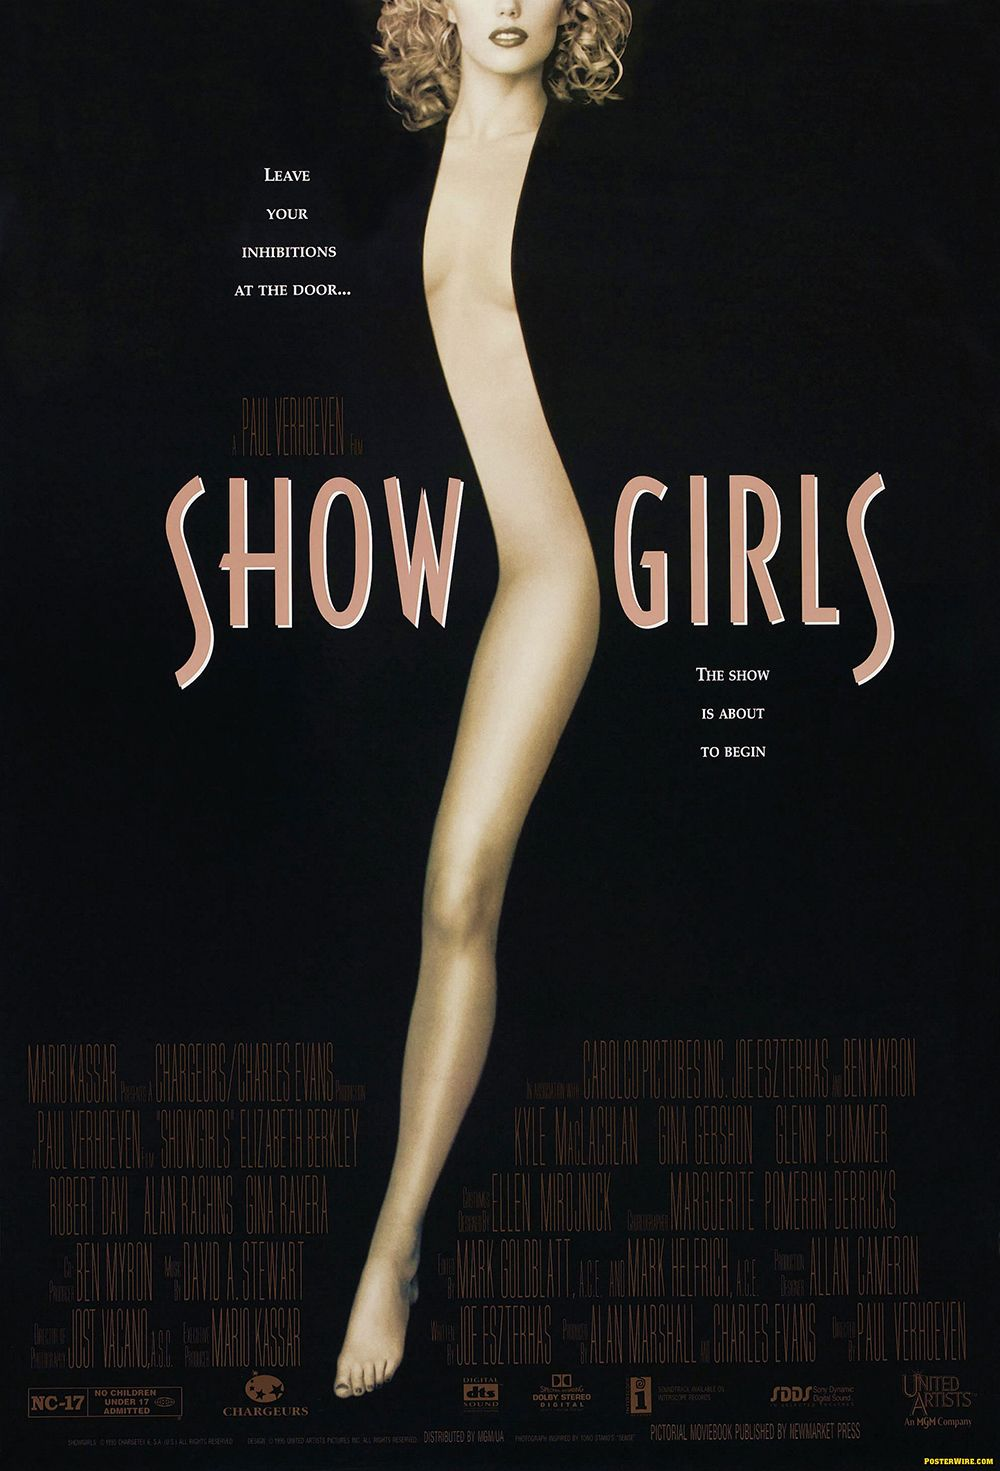 Showgirls (1995) This so-bad-it's-good cult-classic follows Elizabeth Berkley (yup, Jessie from Saved By The Bell ) as Nomi as she arrives in Las Vegas with a dream of becoming a dancer. She works her way through a seedy world of stripping and prostitution (there's A LOT of nudity ), and begins to question whether the life of a showgirl—and what it takes to become one—is truly desirable.